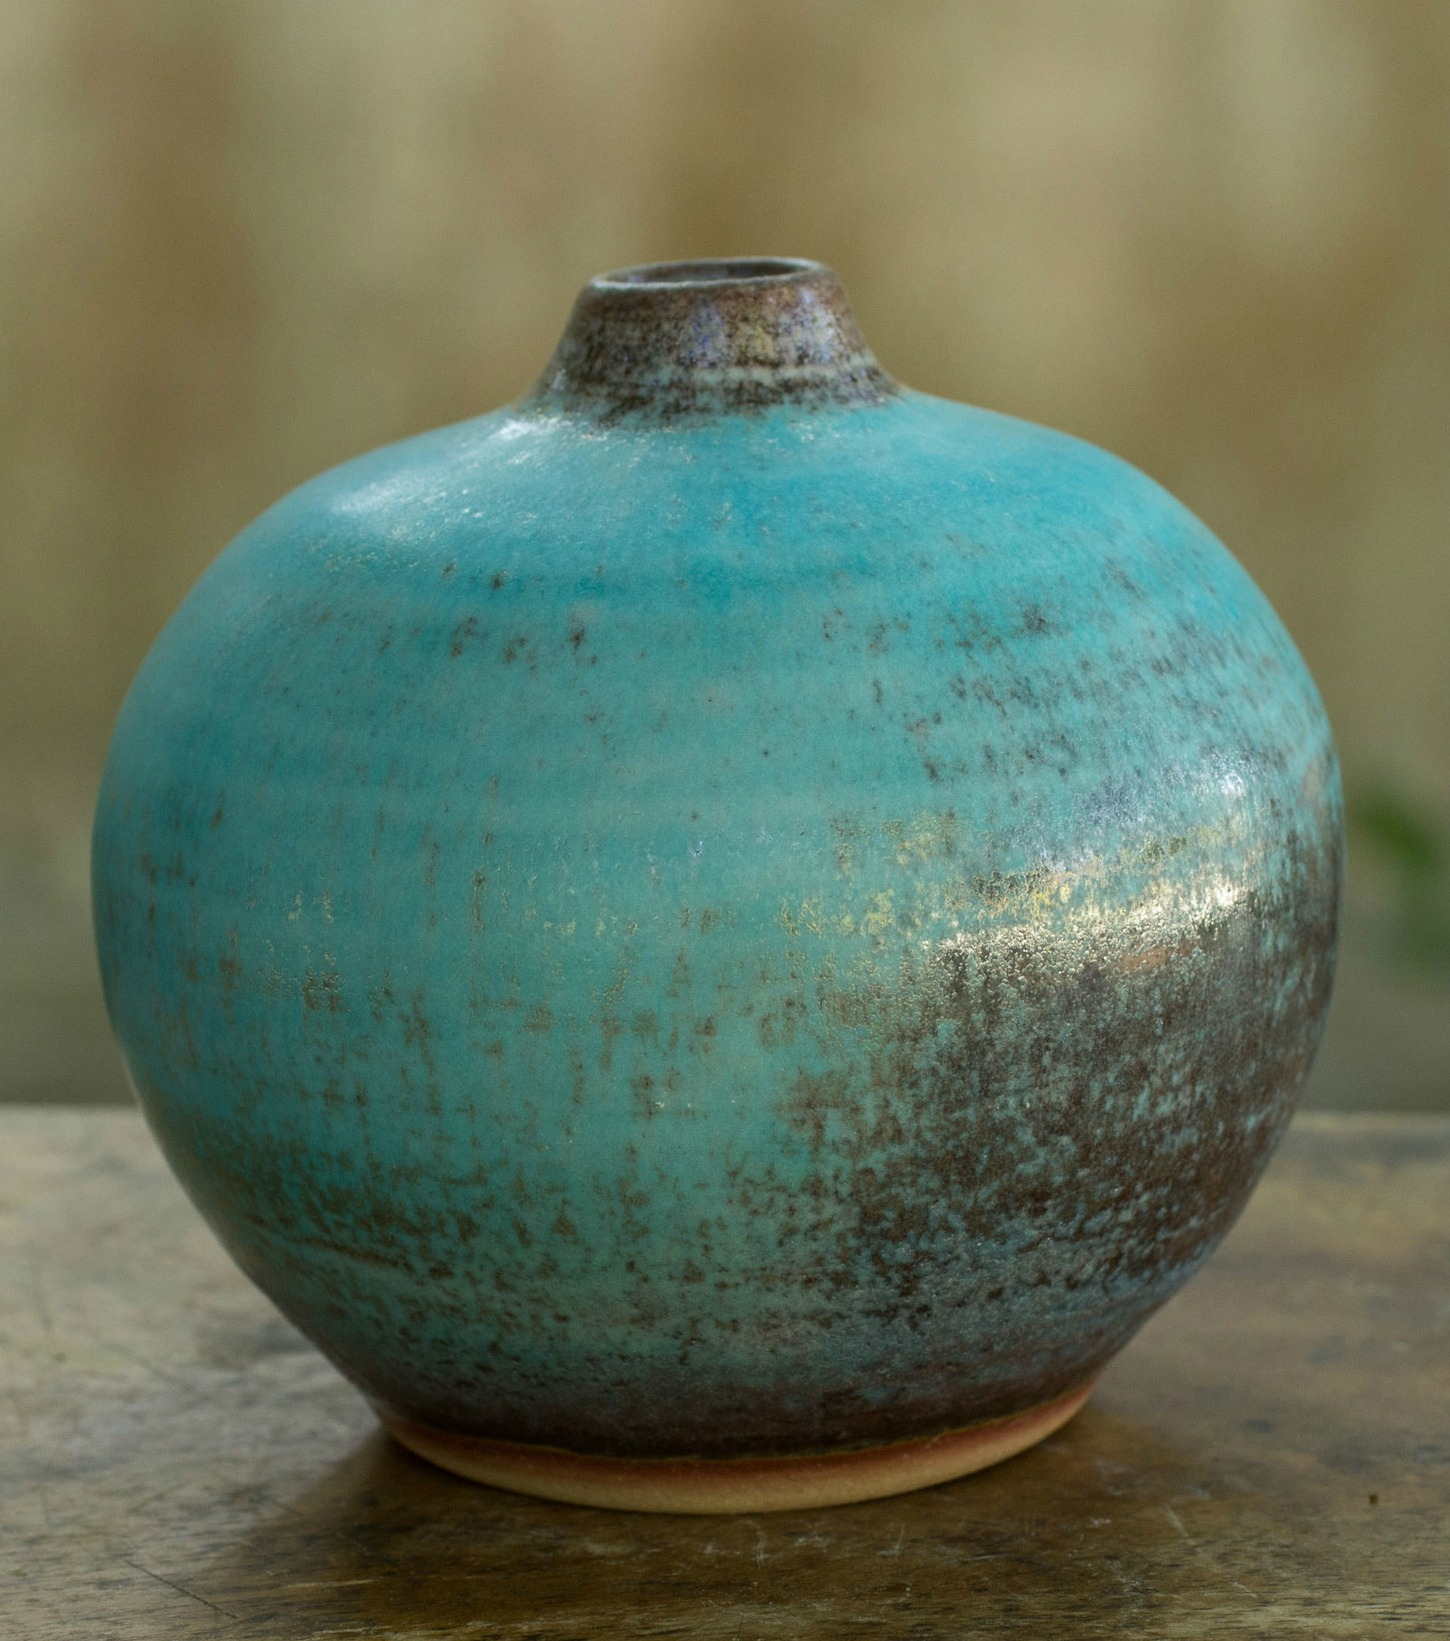 Ceramic Bud Vase Crafted by Hand